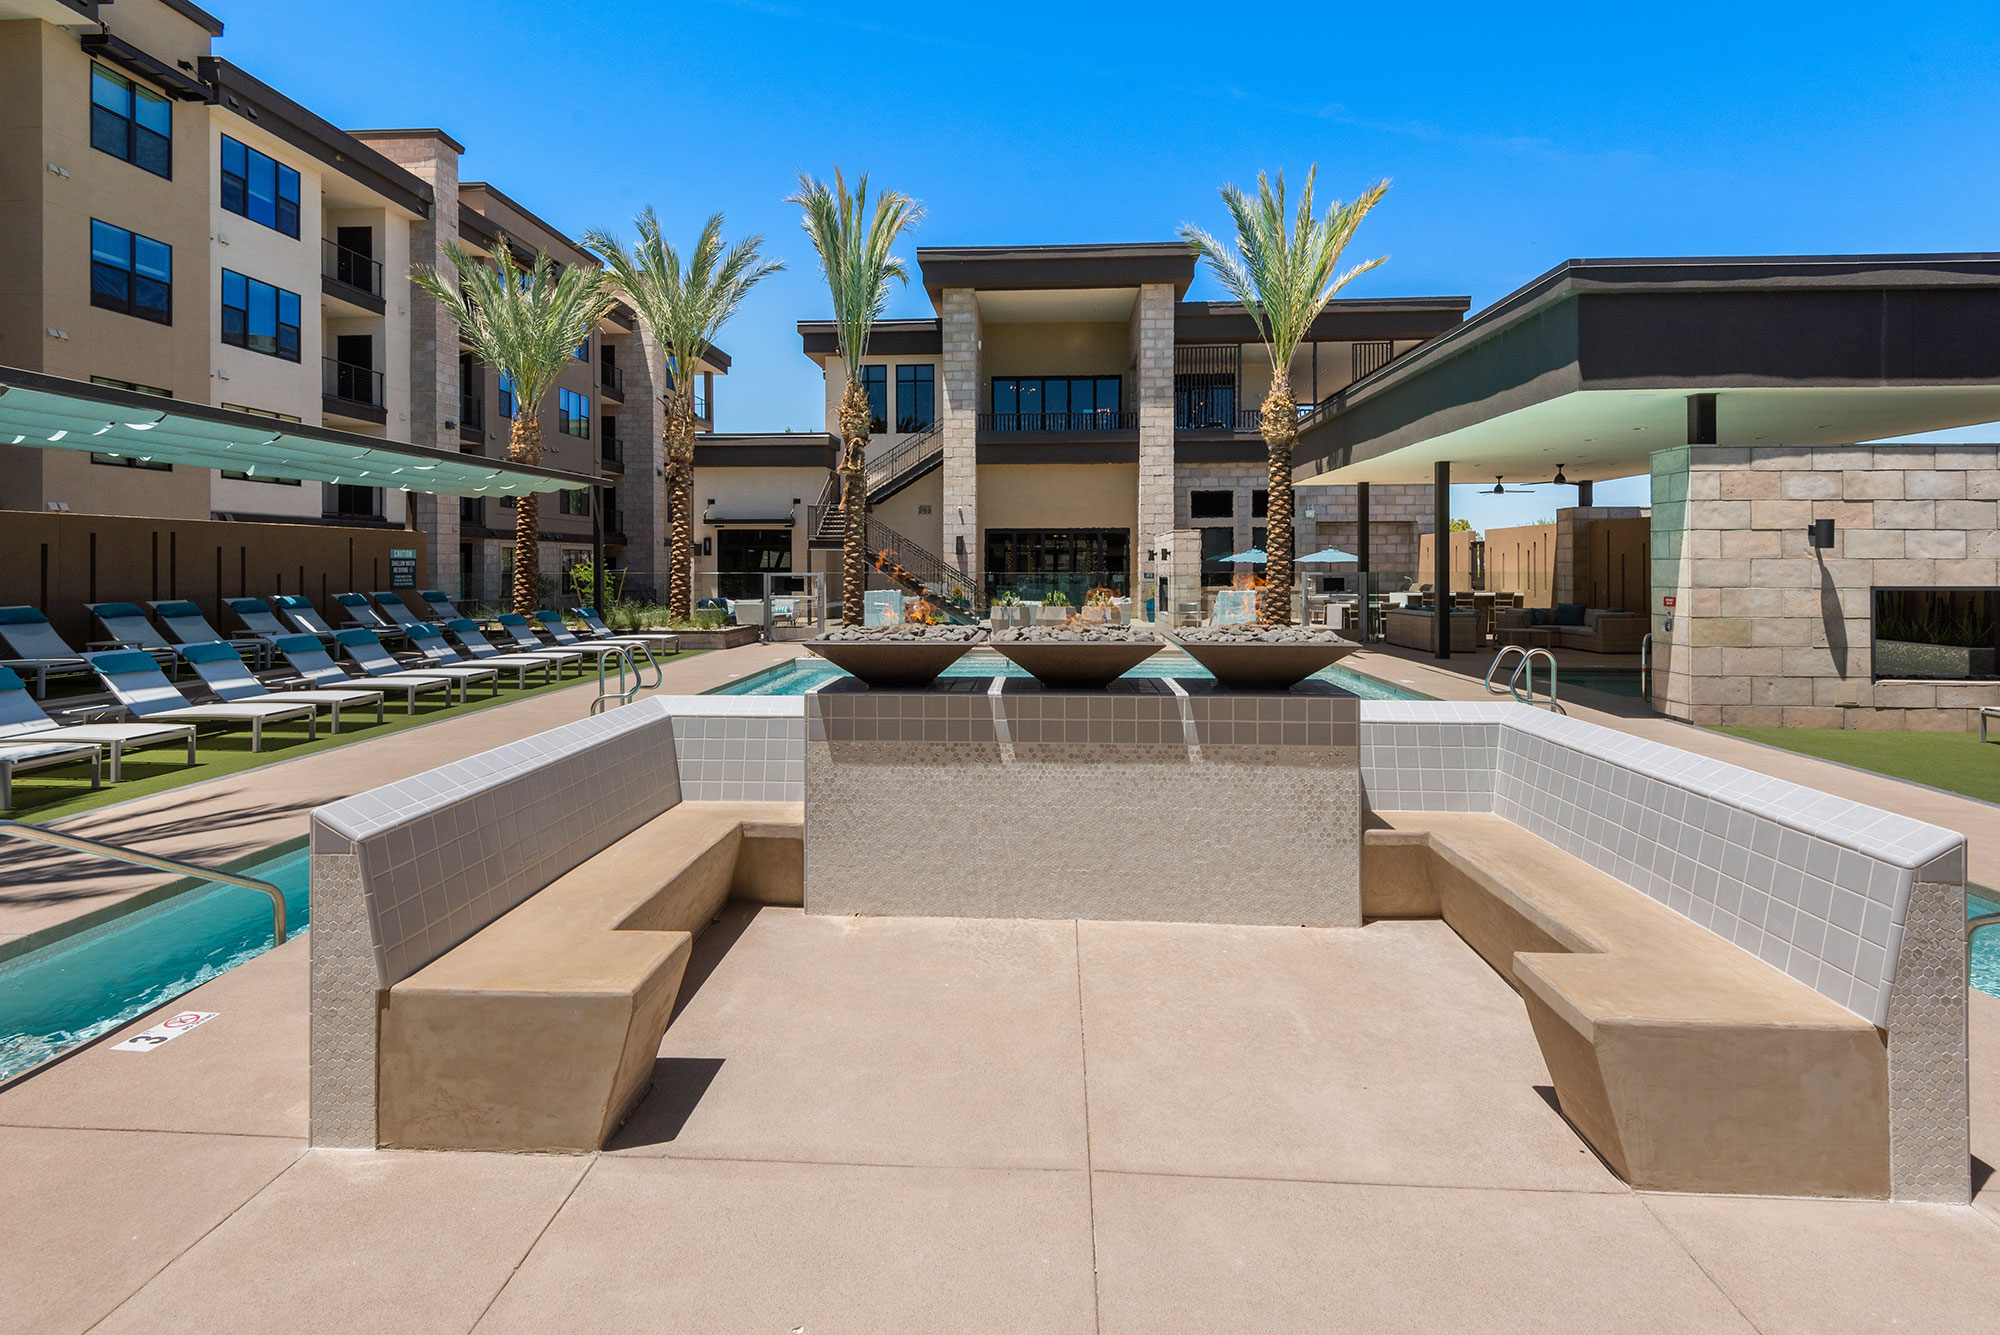 Riata - Poolside loung area with stone seating